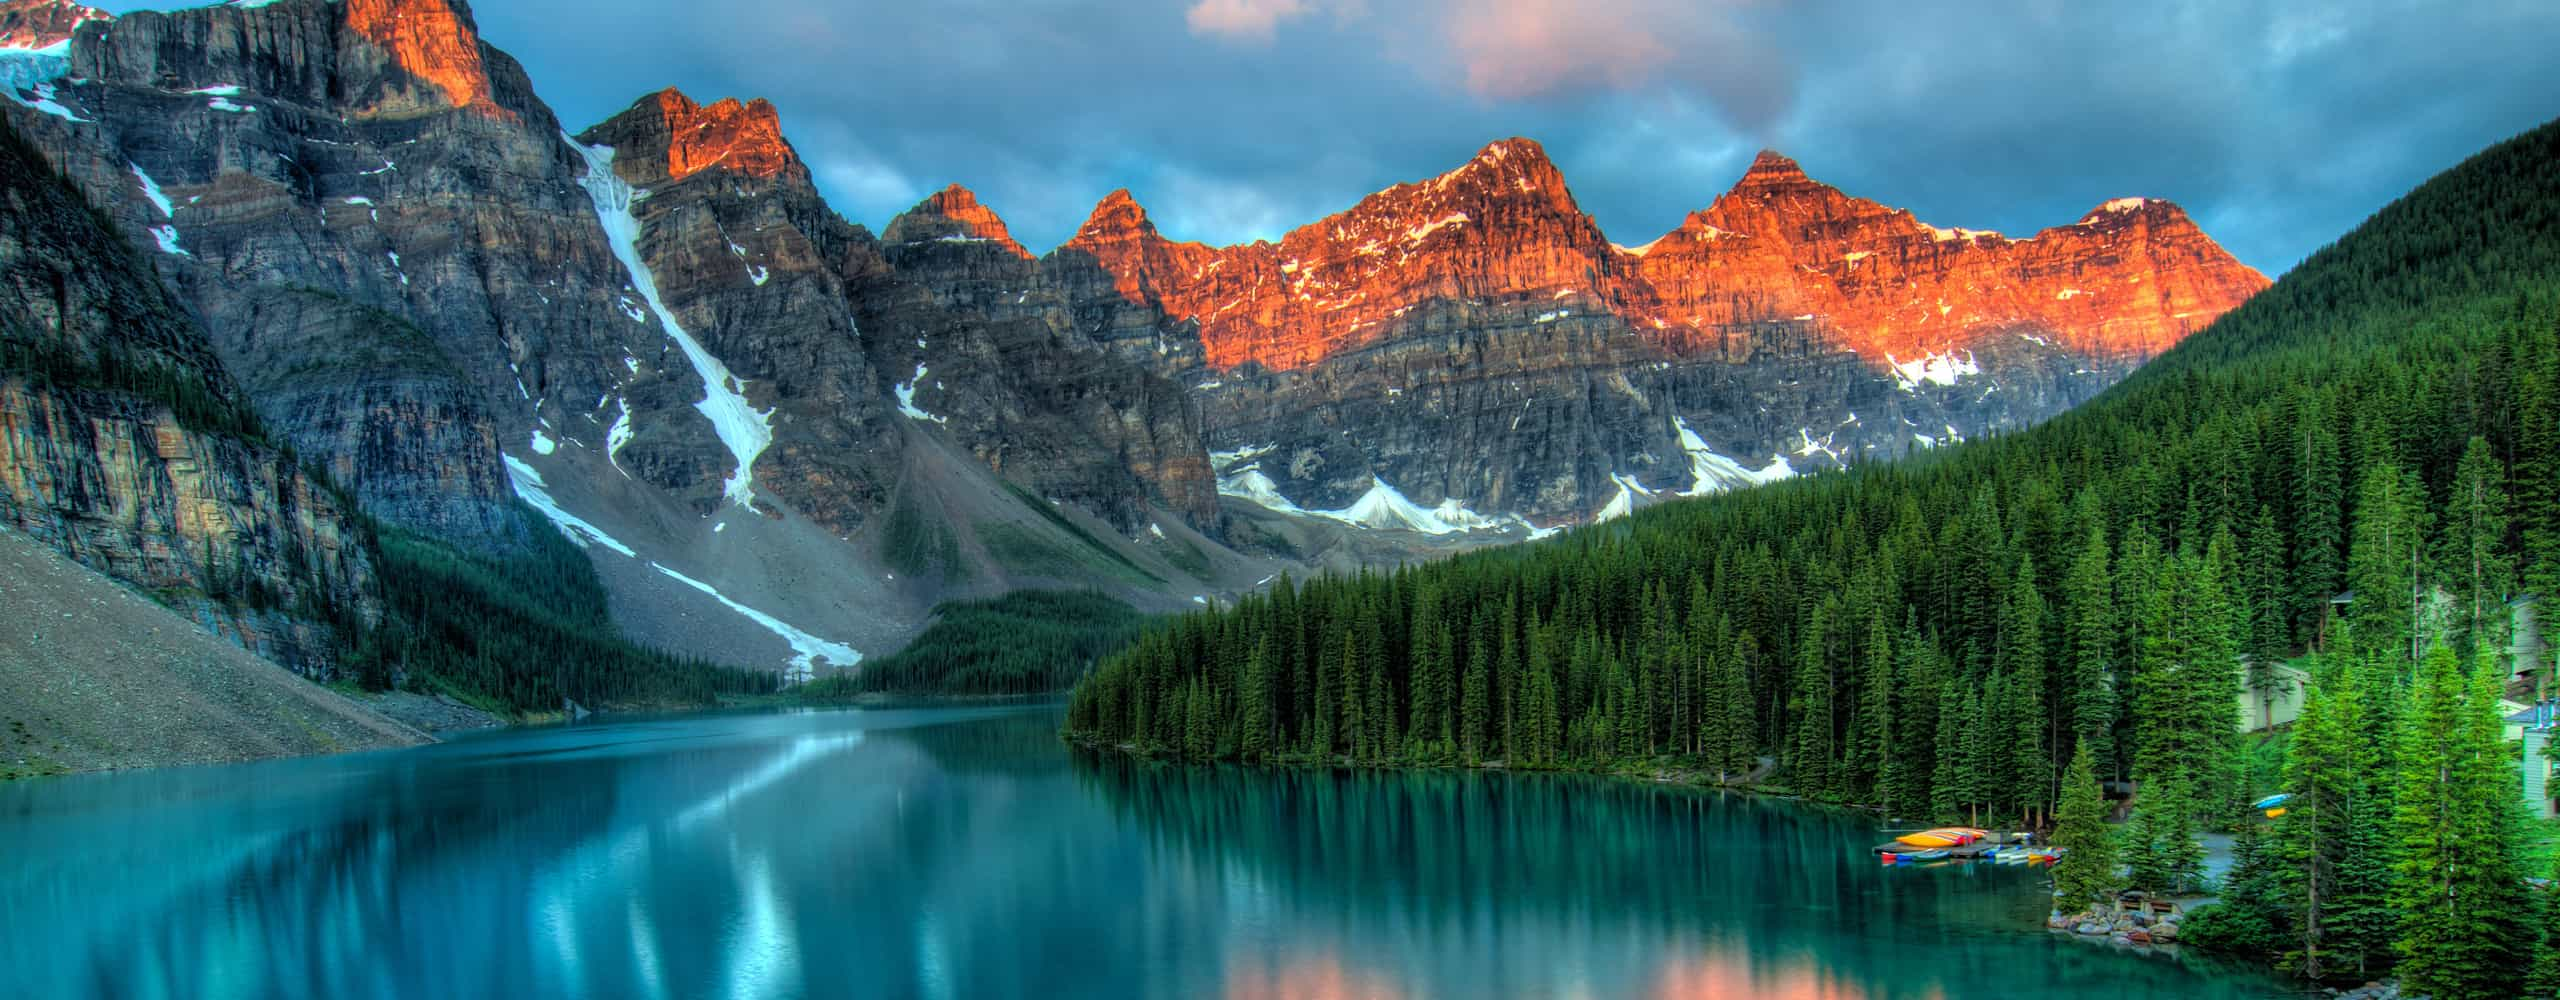 Moraine Lake In Alberta, Canada